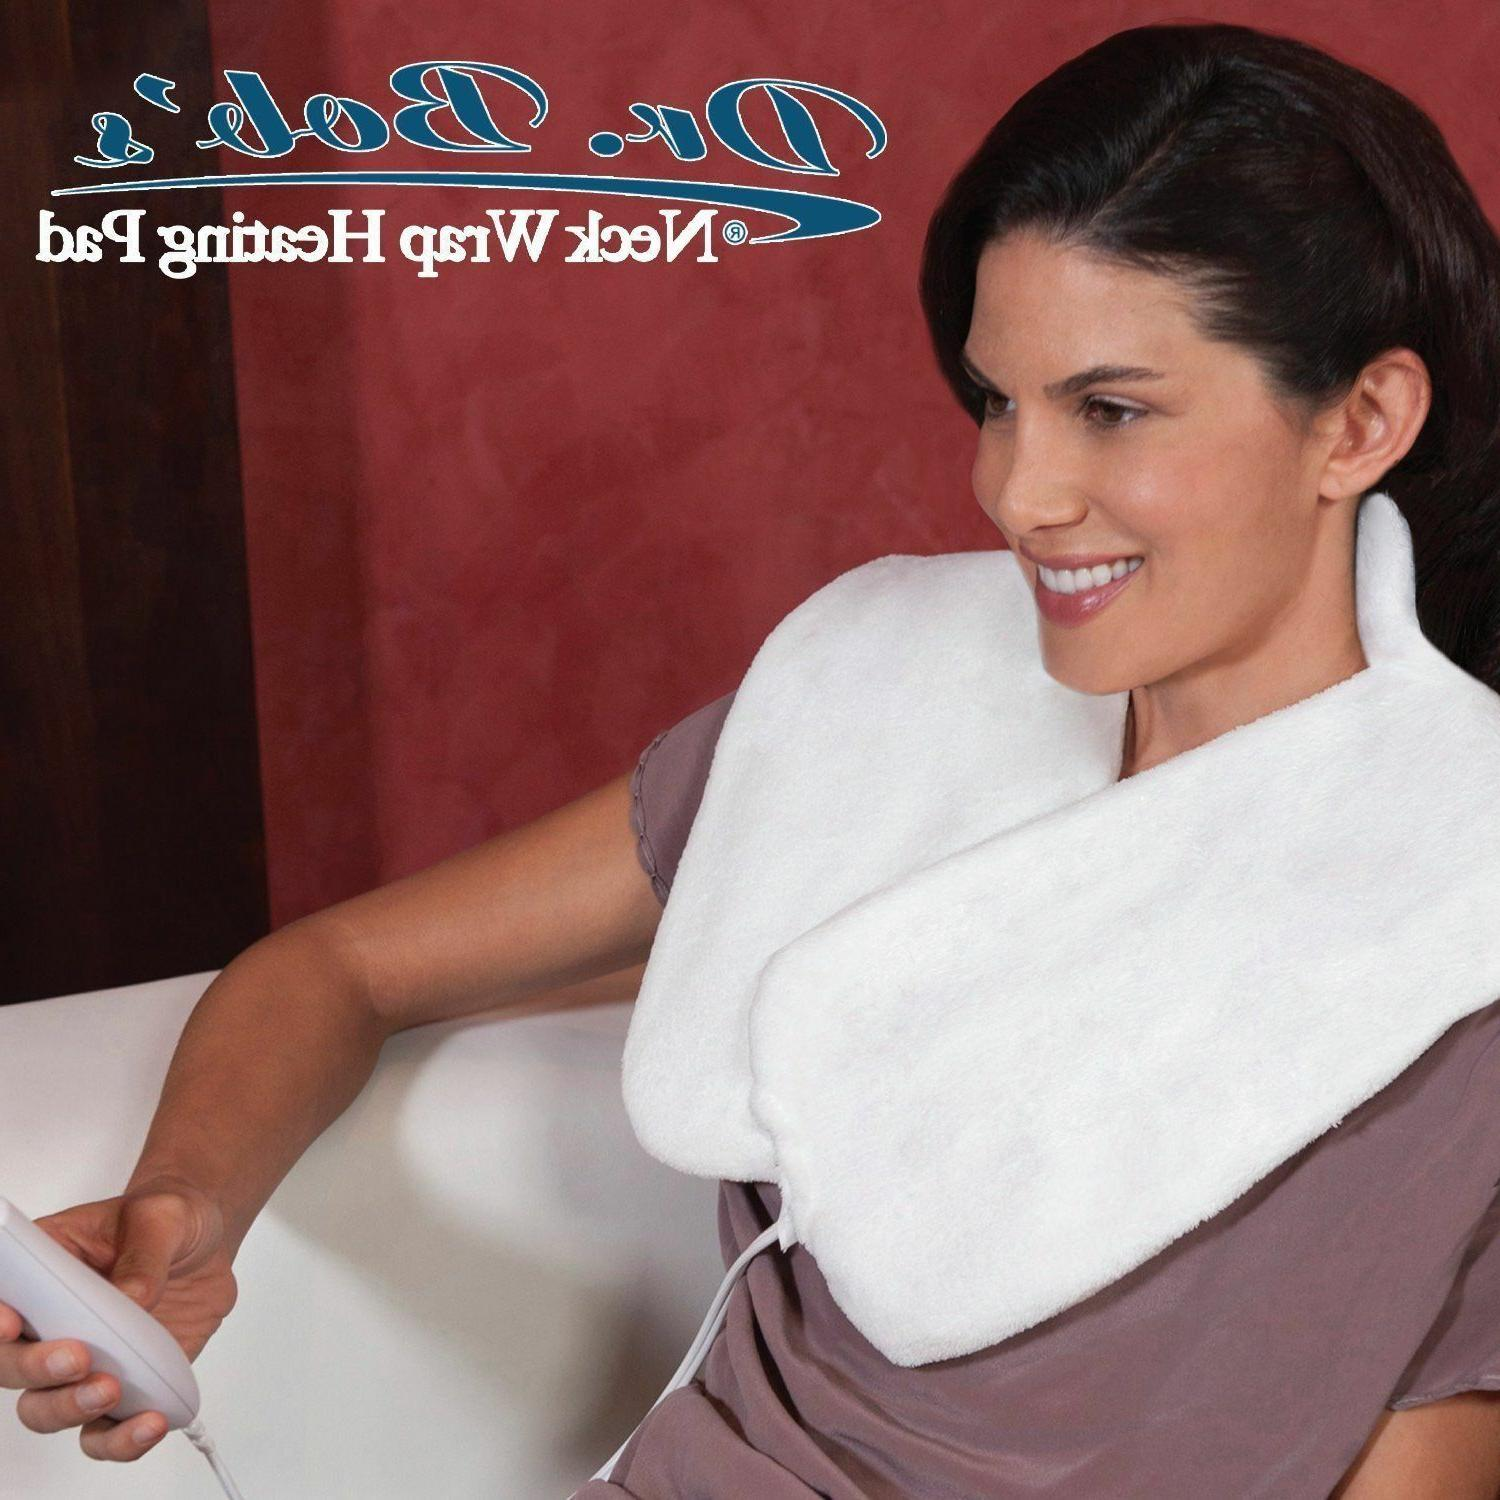 Dr. Bob's Neck Heating Pad Doctor for